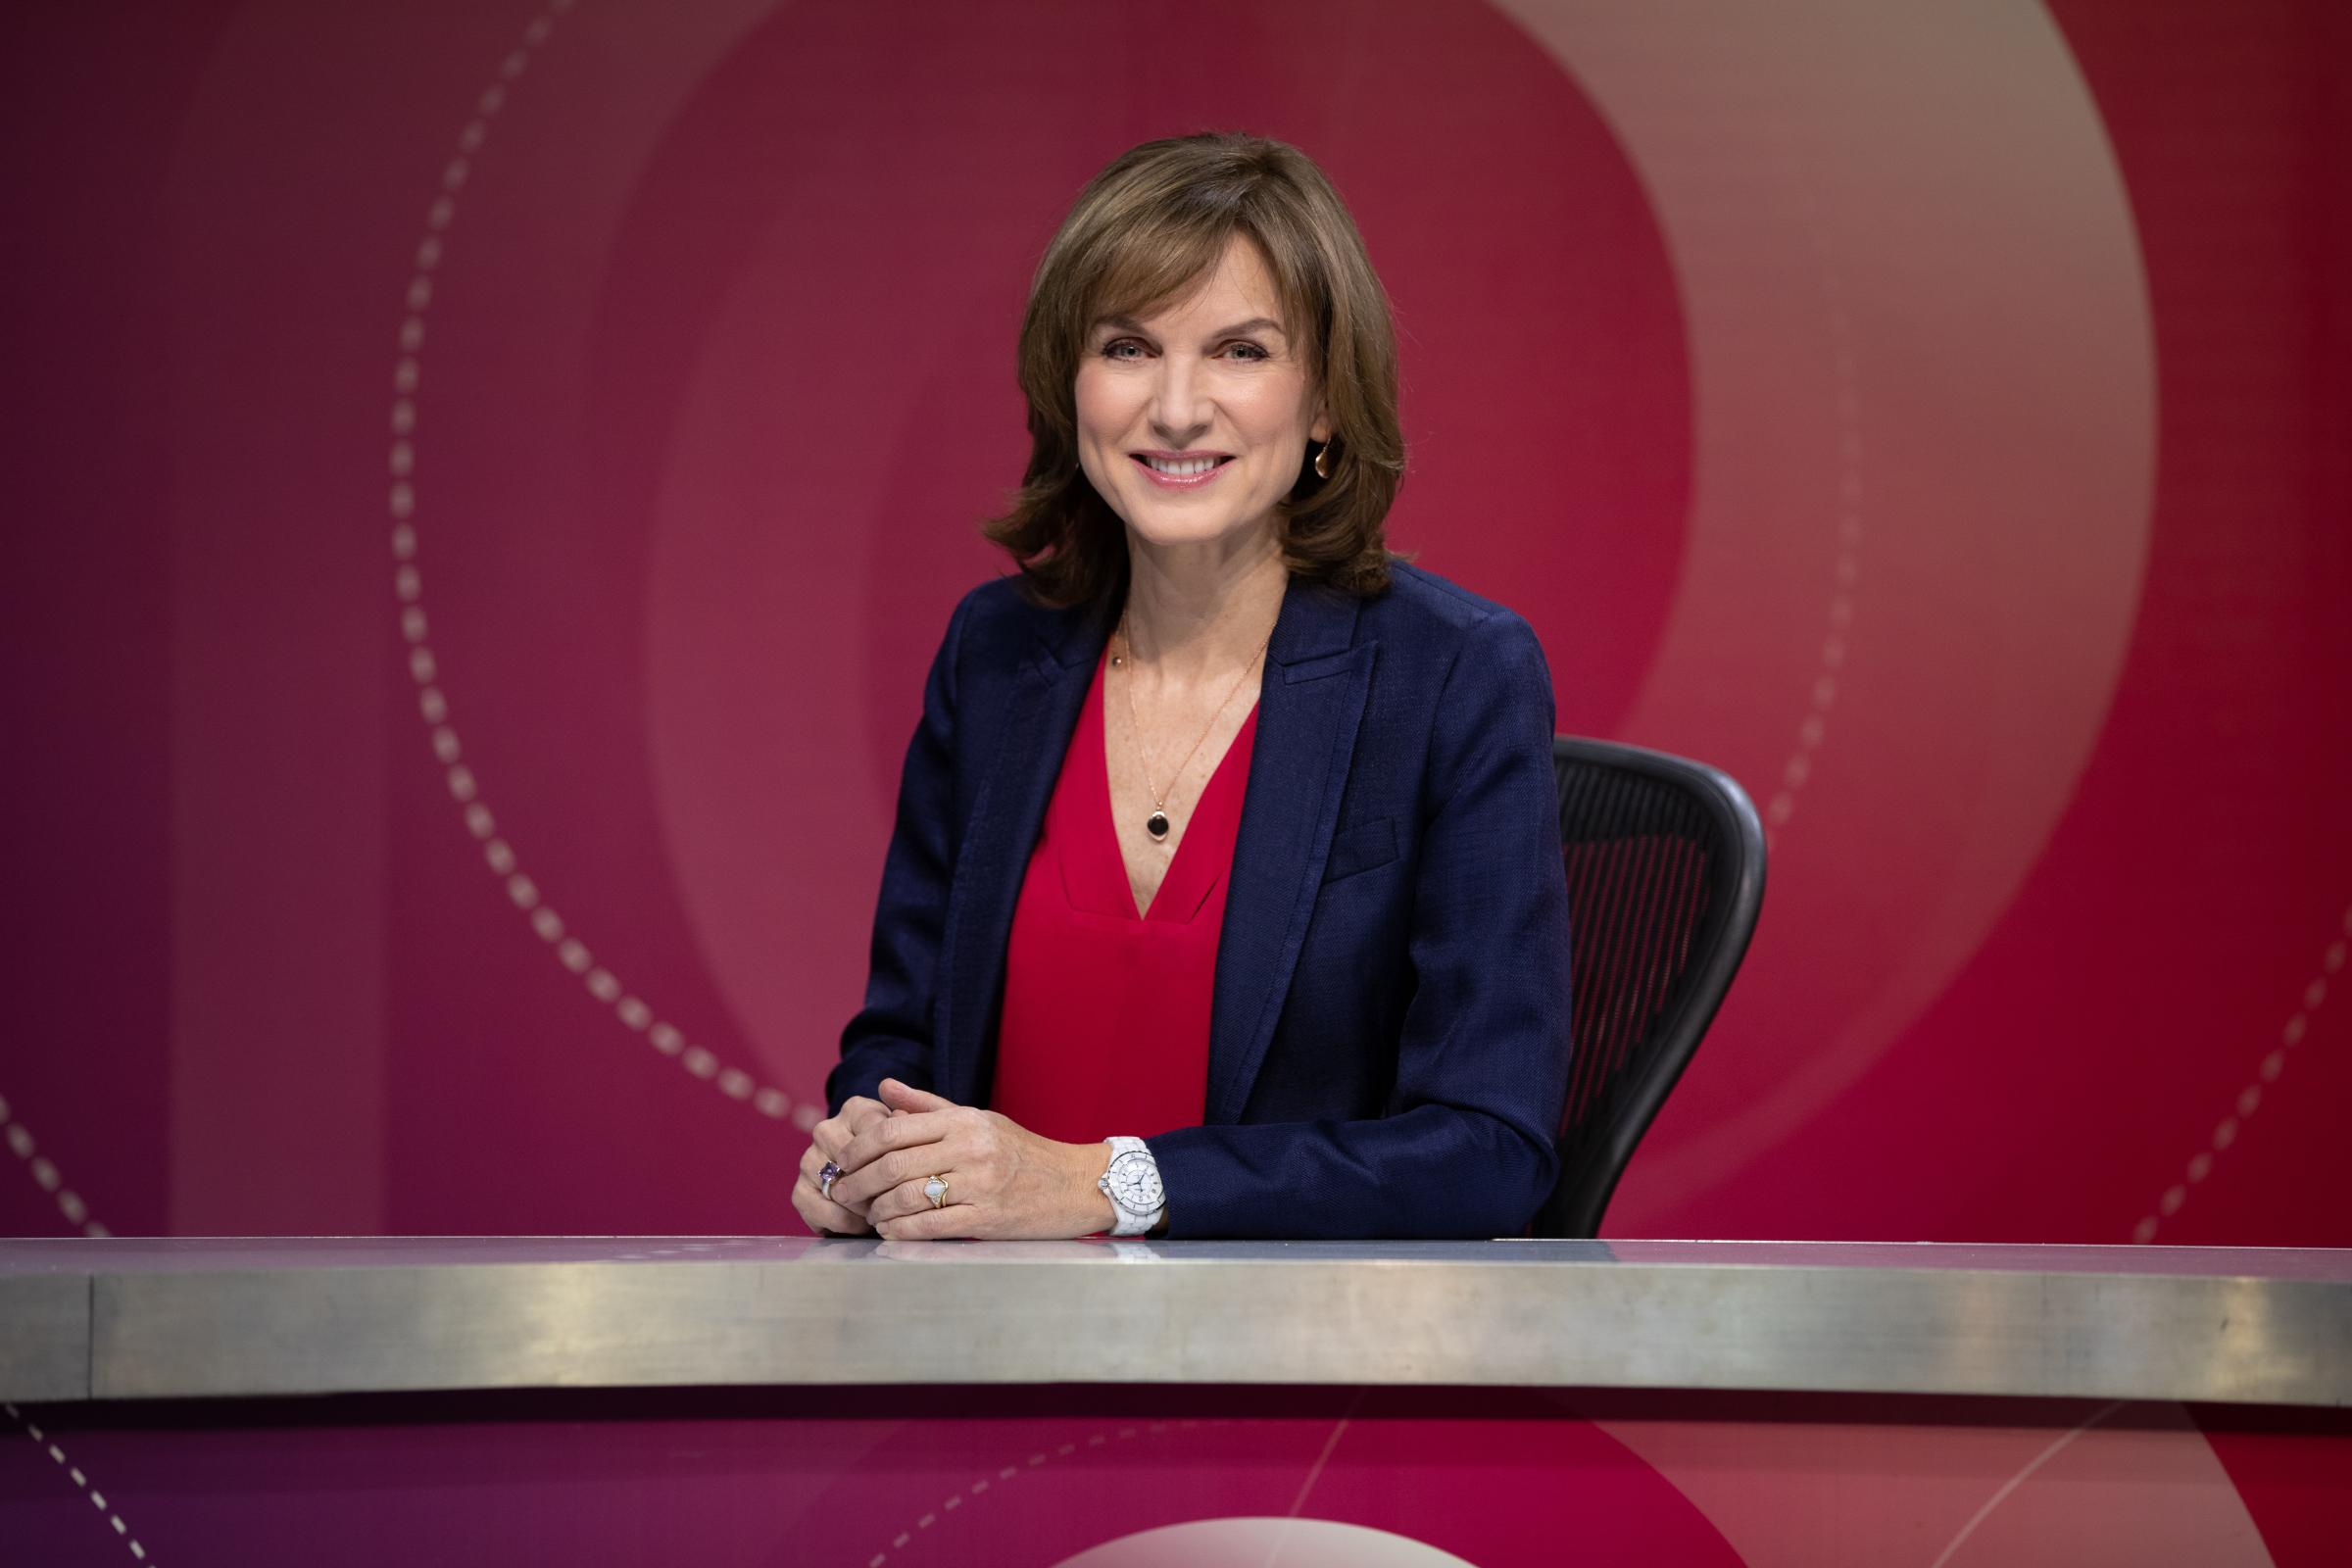 This will be Fiona Bruce's second episode as Question Time host